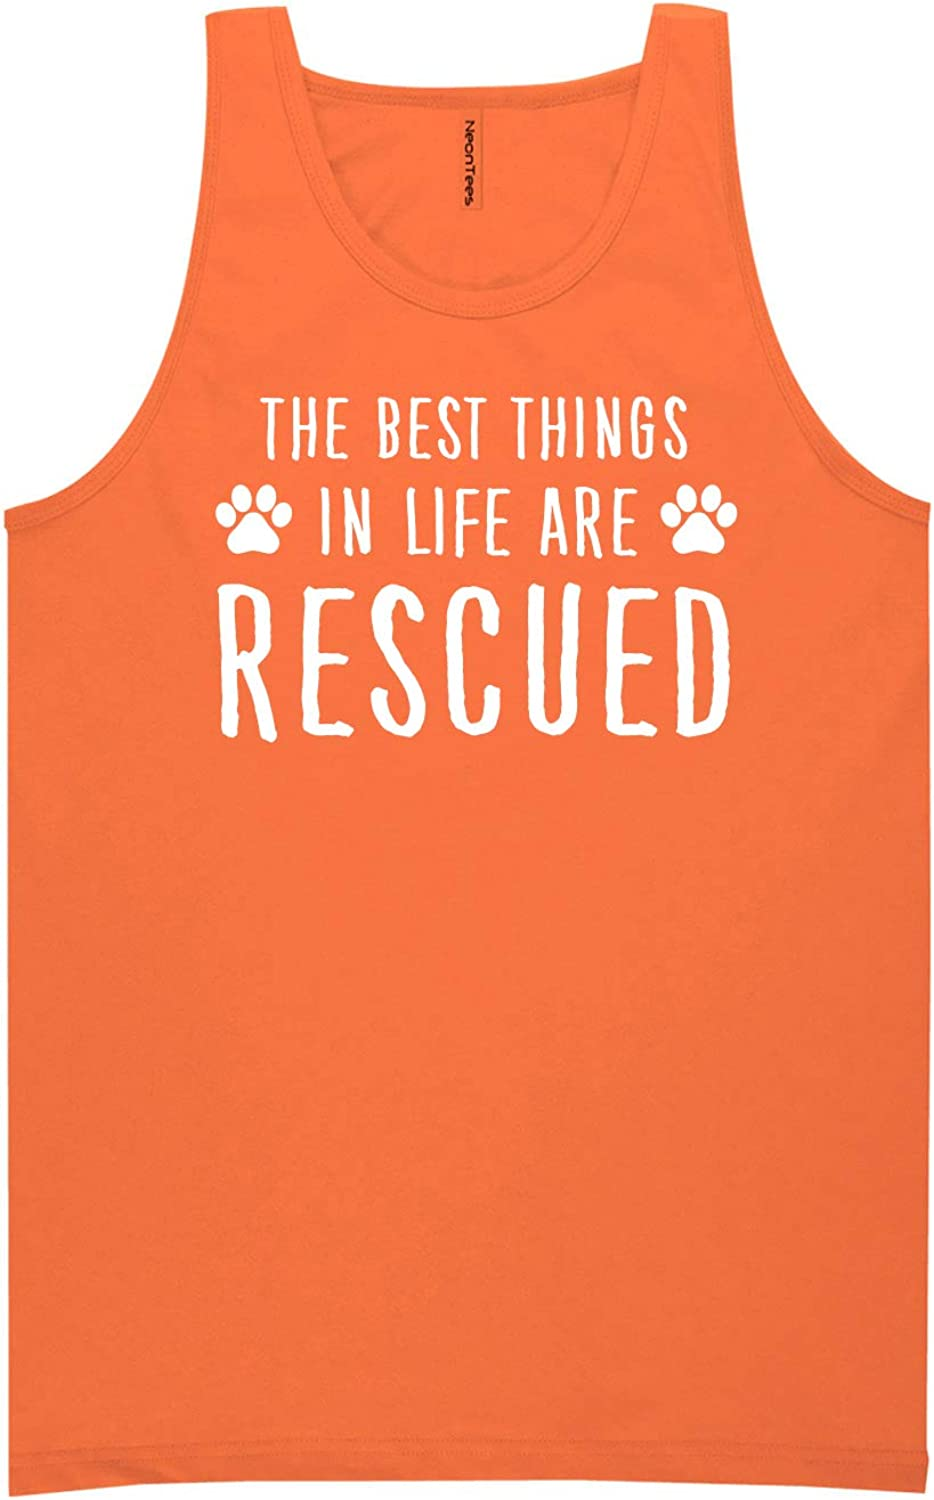 Best Things in Life are Rescued Neon Orange Tank Top - XX-Large